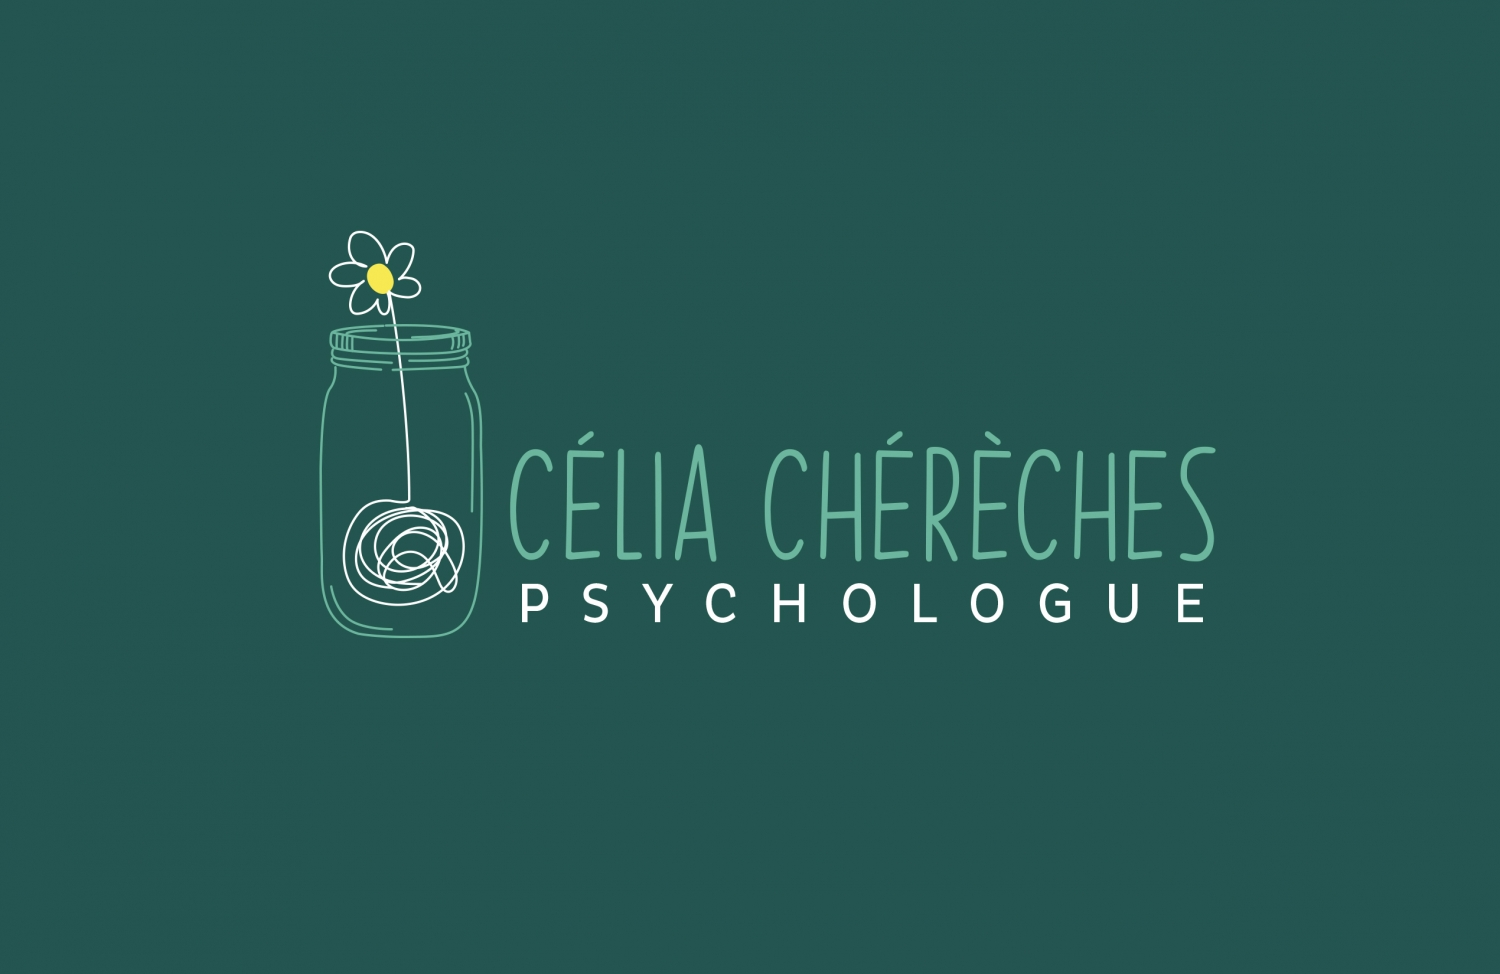 dlogo-psychologue-celia